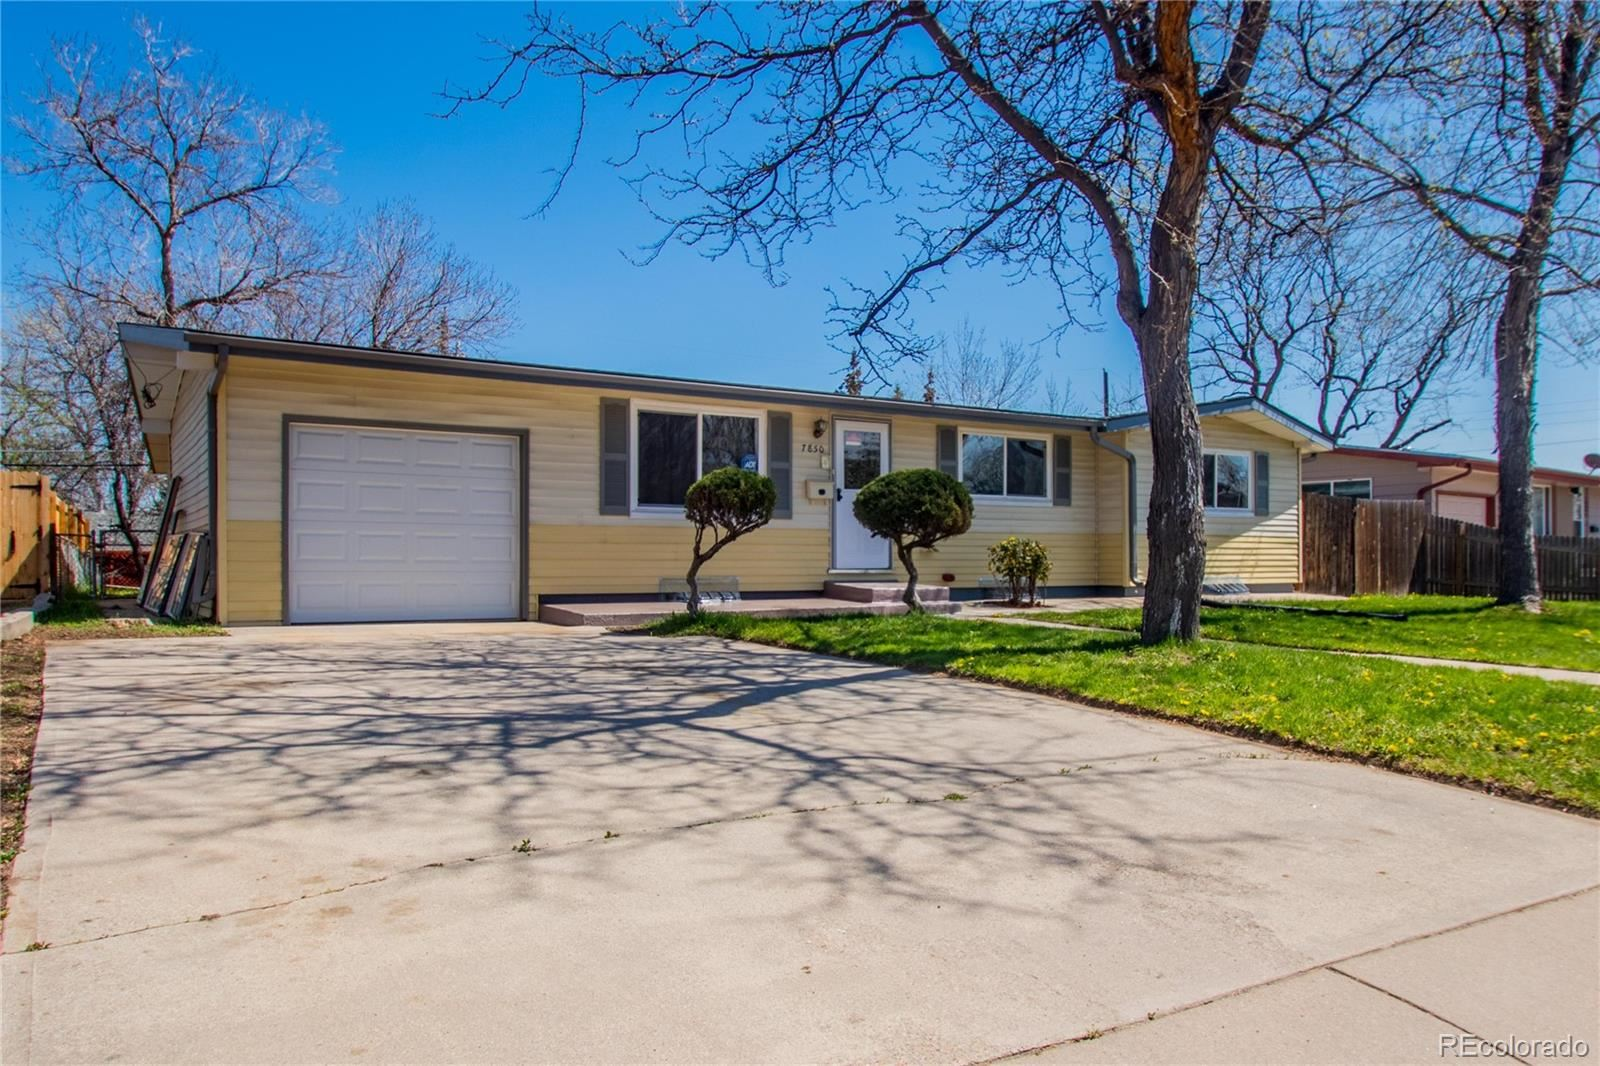 7850 Valley View Drive, Denver, CO 80221 - #: 8498621